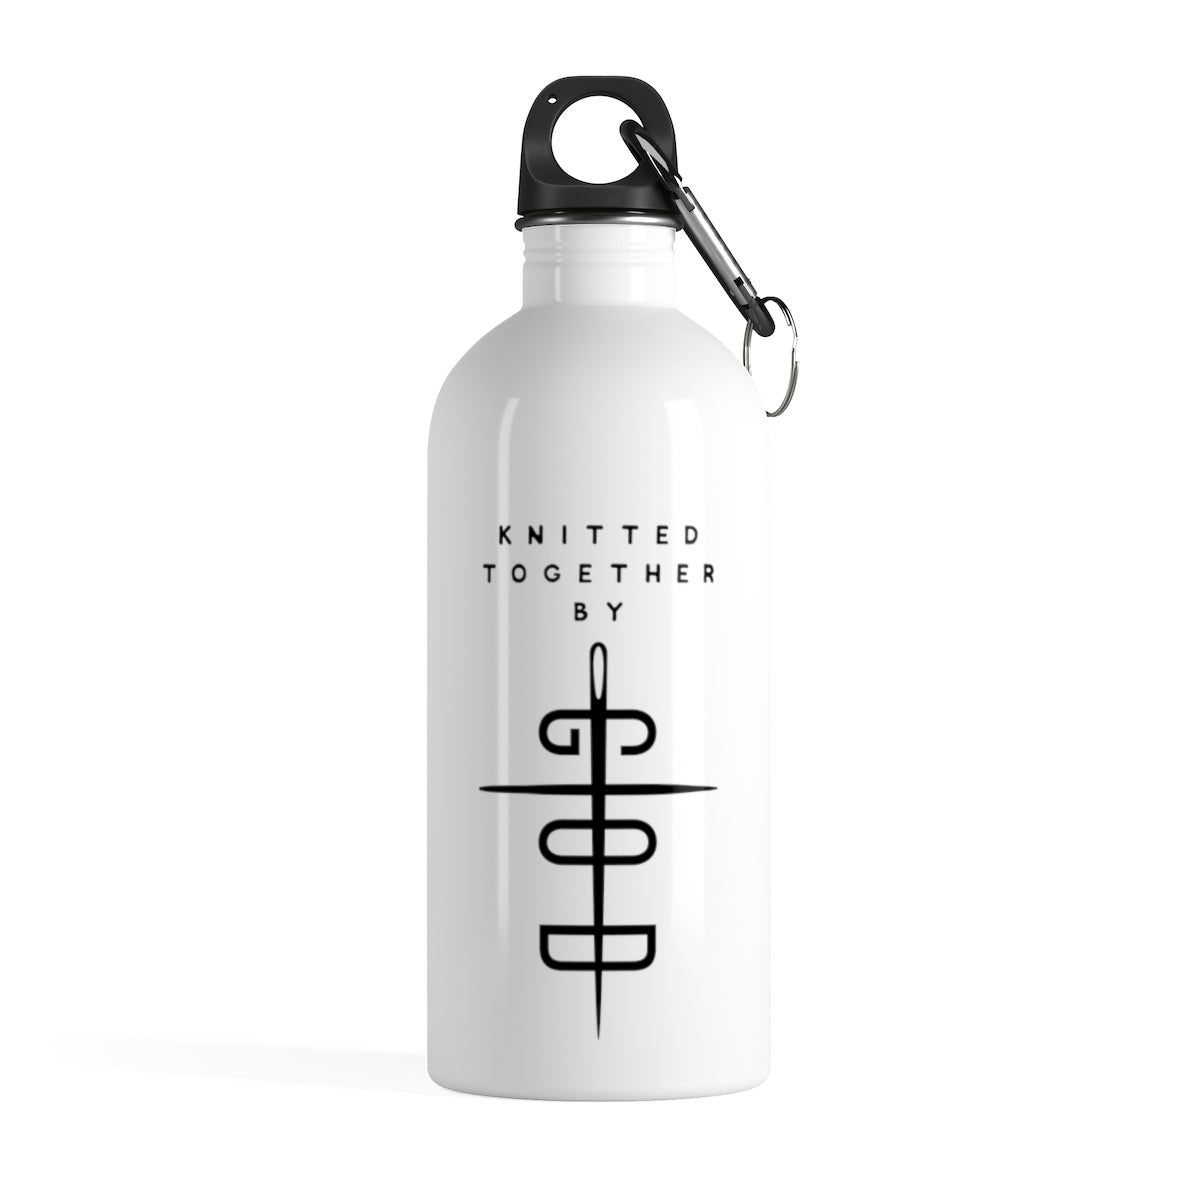 Knitted Together By God Stainless Steel Water Bottle